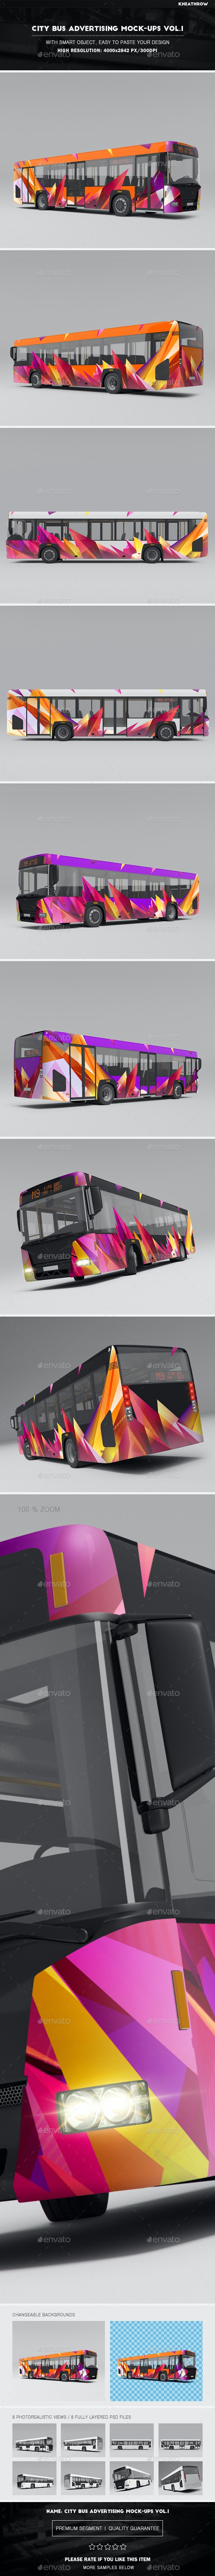 City Bus Advertising Mock-Ups Vol.1 - Product Mock-Ups Graphics